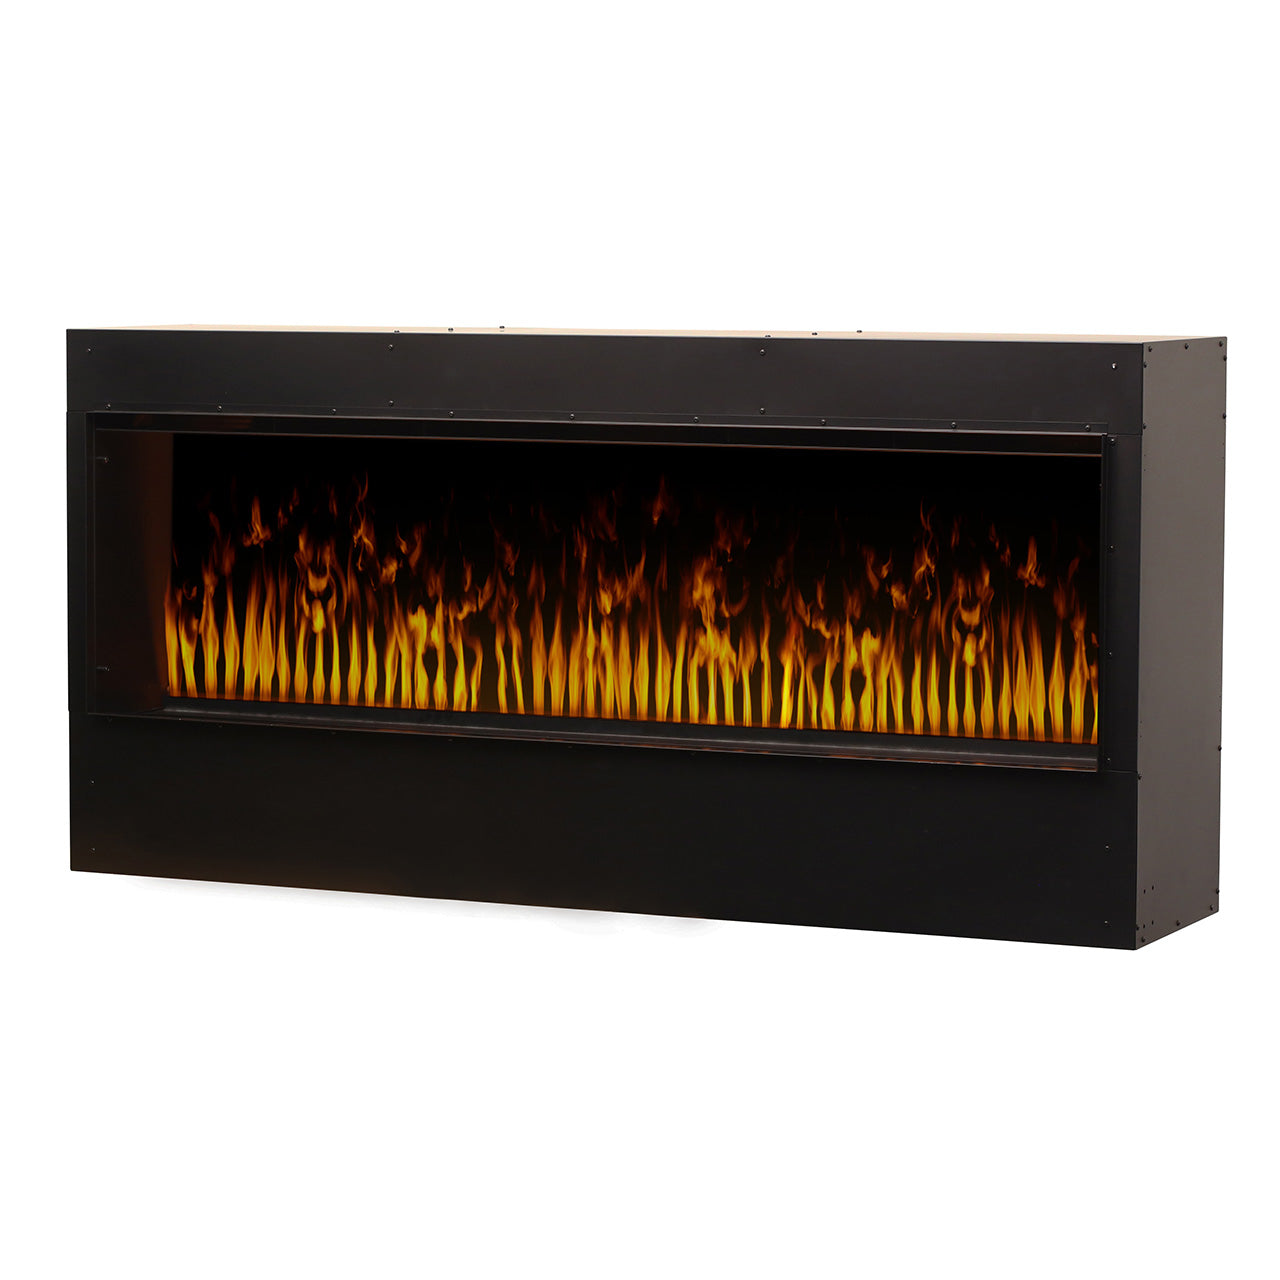 Opti-myst® Pro 1500 Built-in Electric Firebox